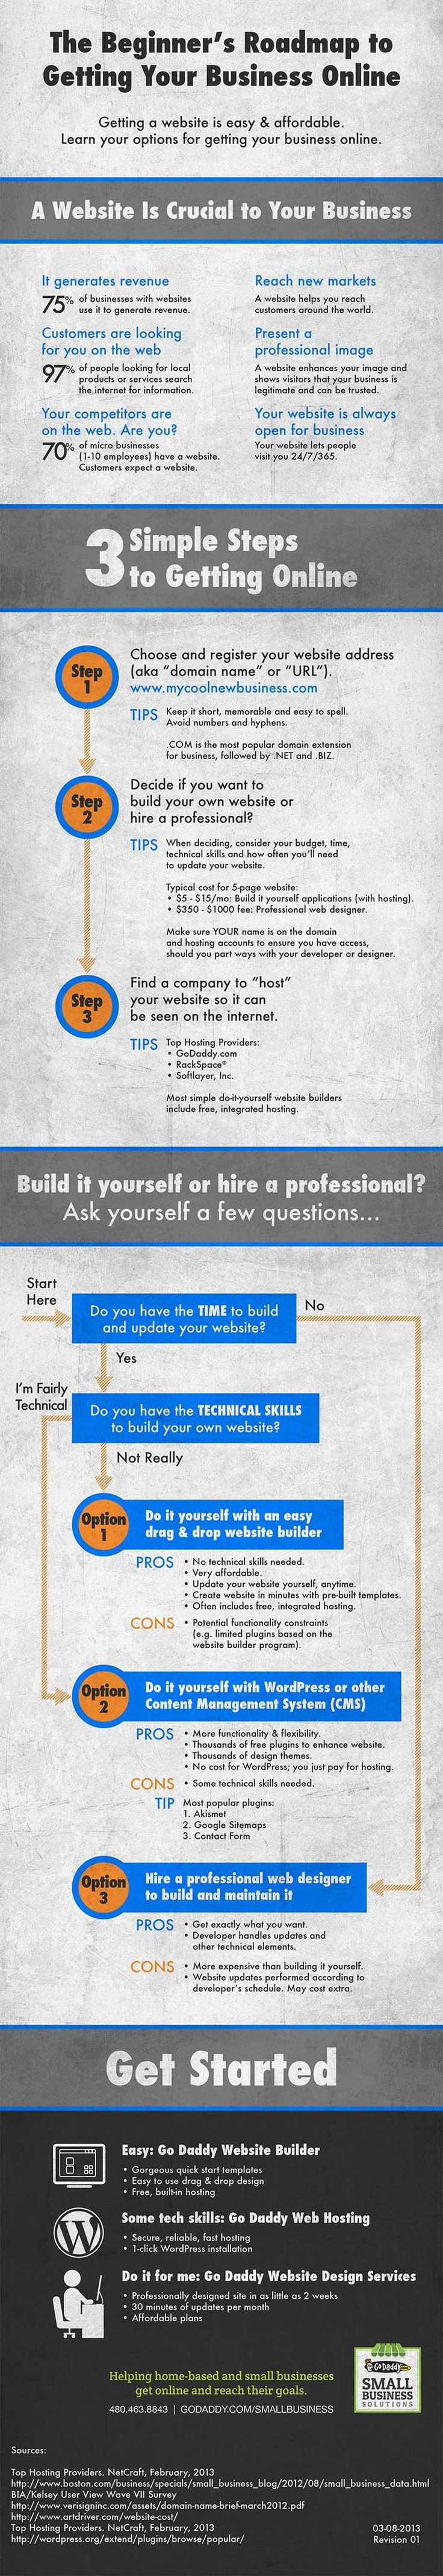 Beginner's Roadmap For Getting Your Business Online [Infographic]